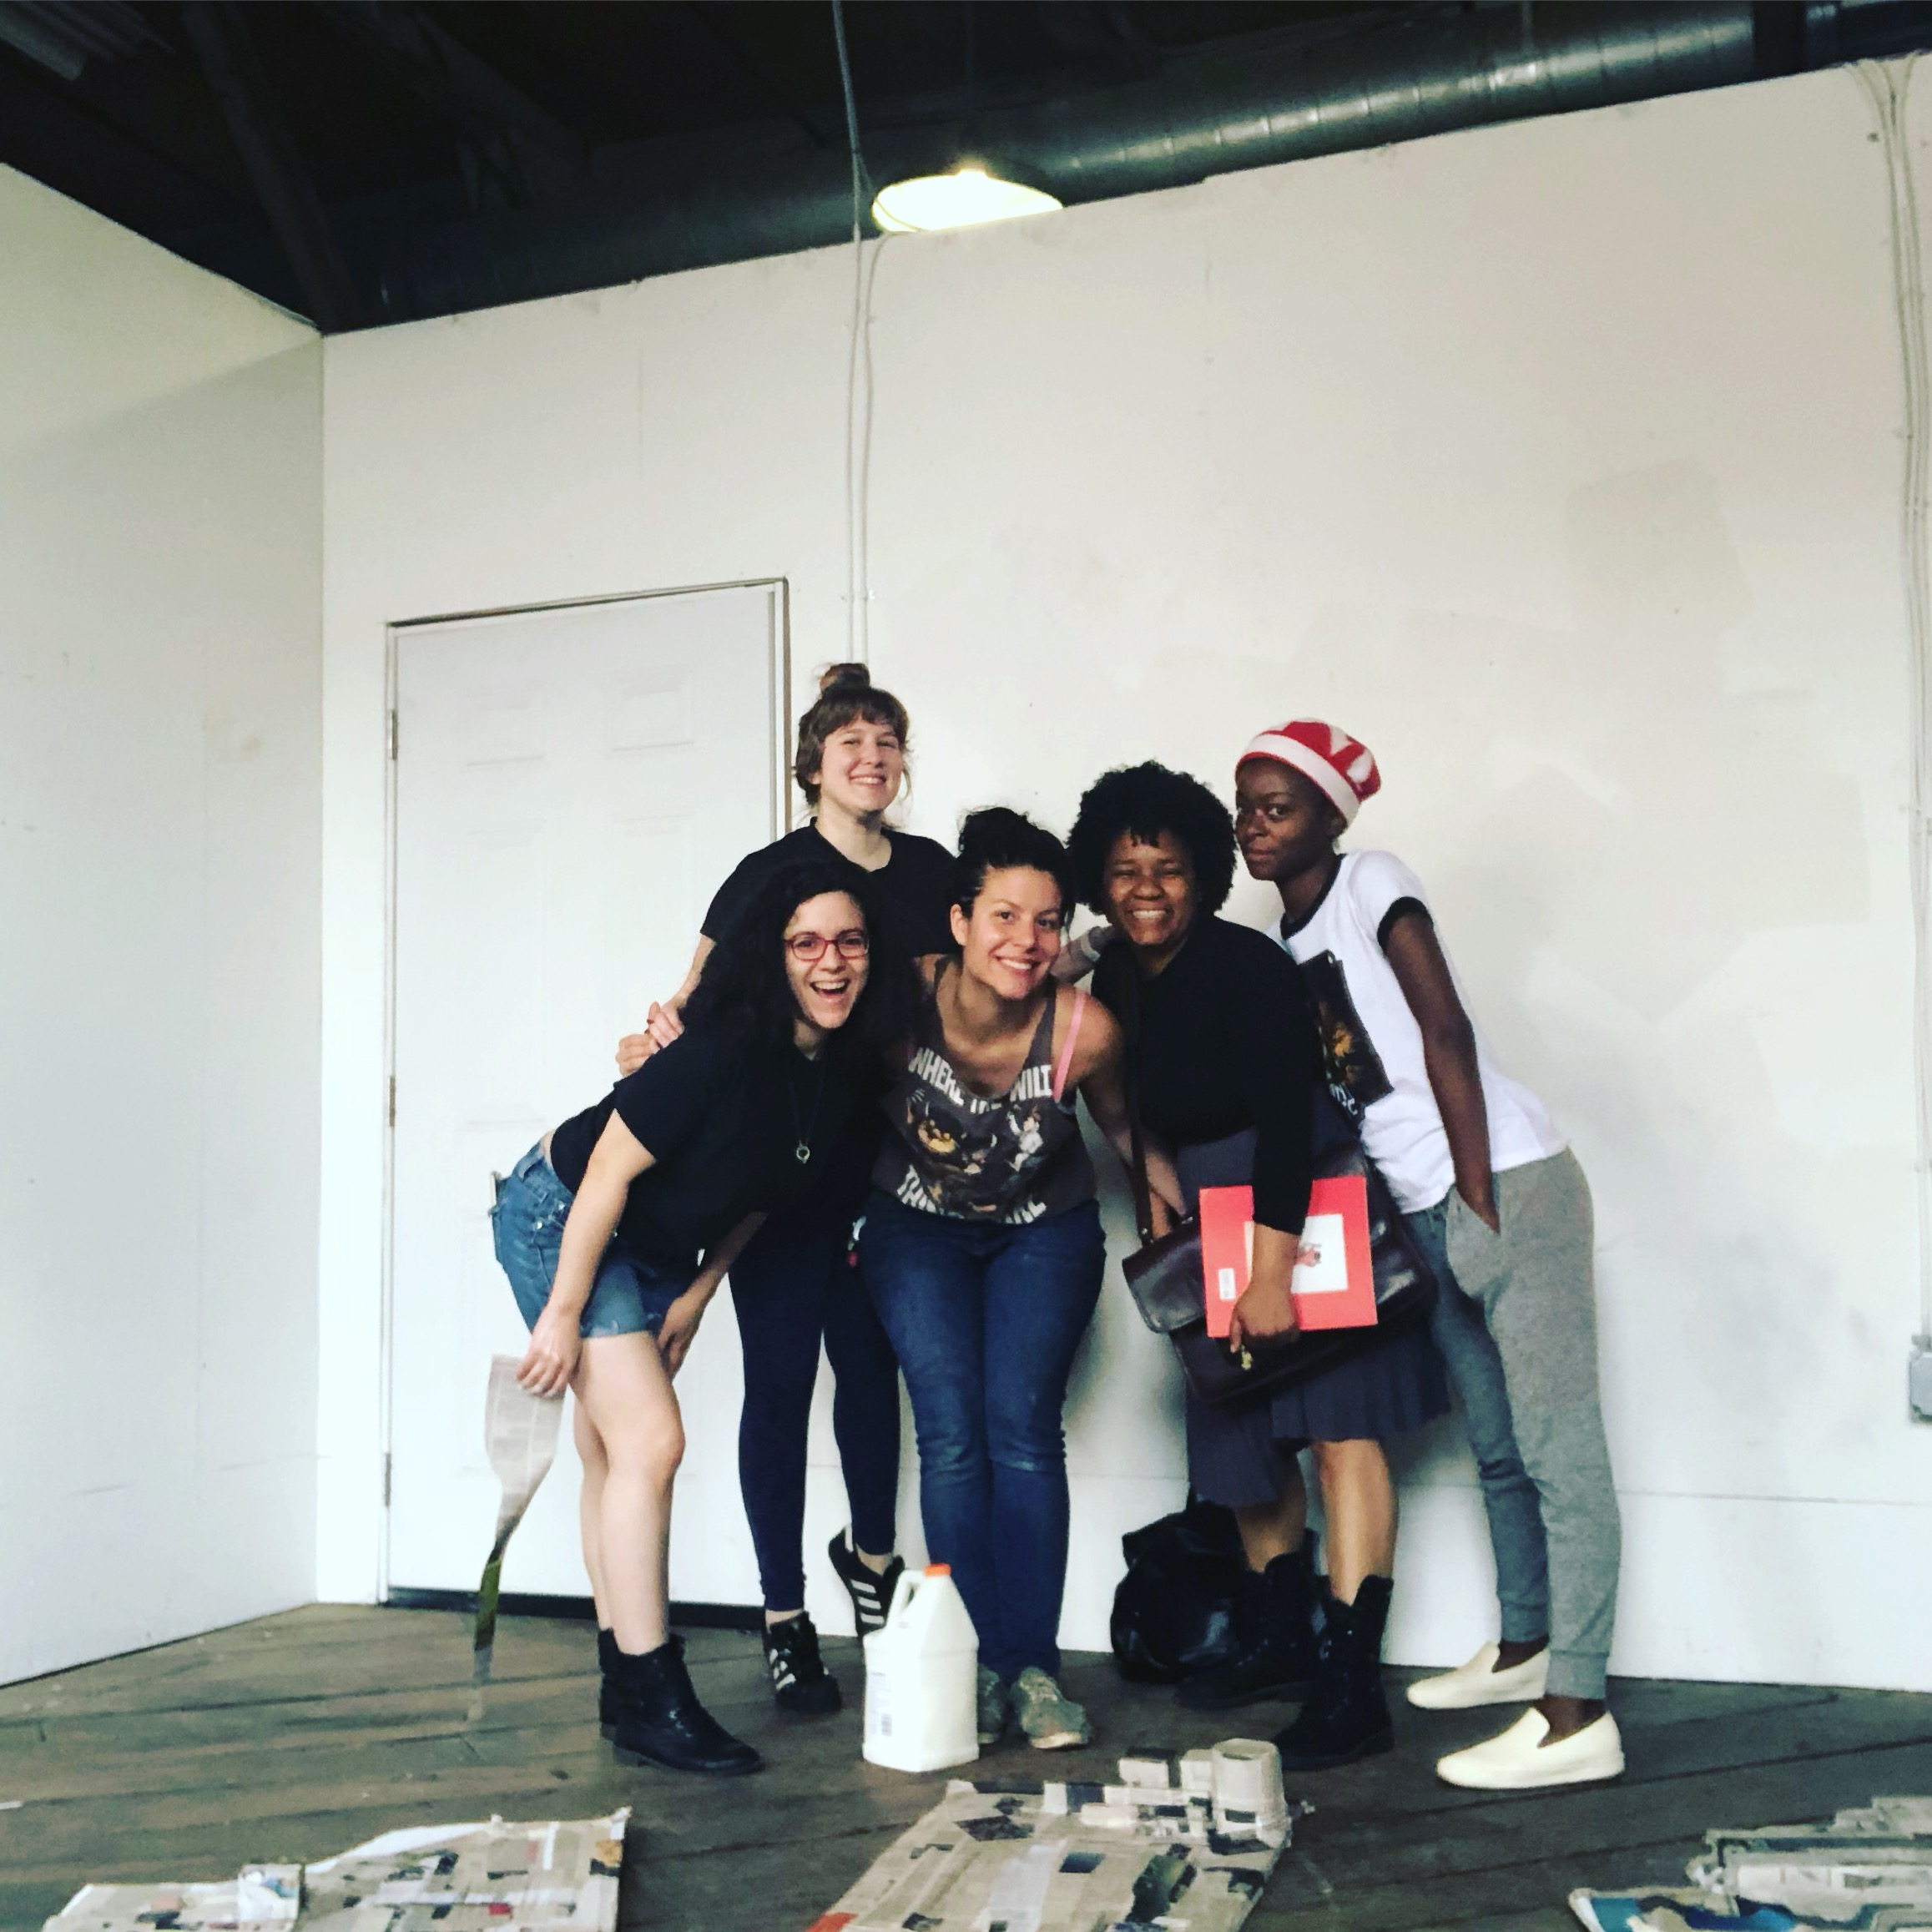 From Left to Right: Angela Bortone, Haylee Anne, Jessica Caldas, Angela Davis Johnson and Danielle Deadwyler. This picture is from an early mural work session in Jessica's TCP Goat Farm Studio.